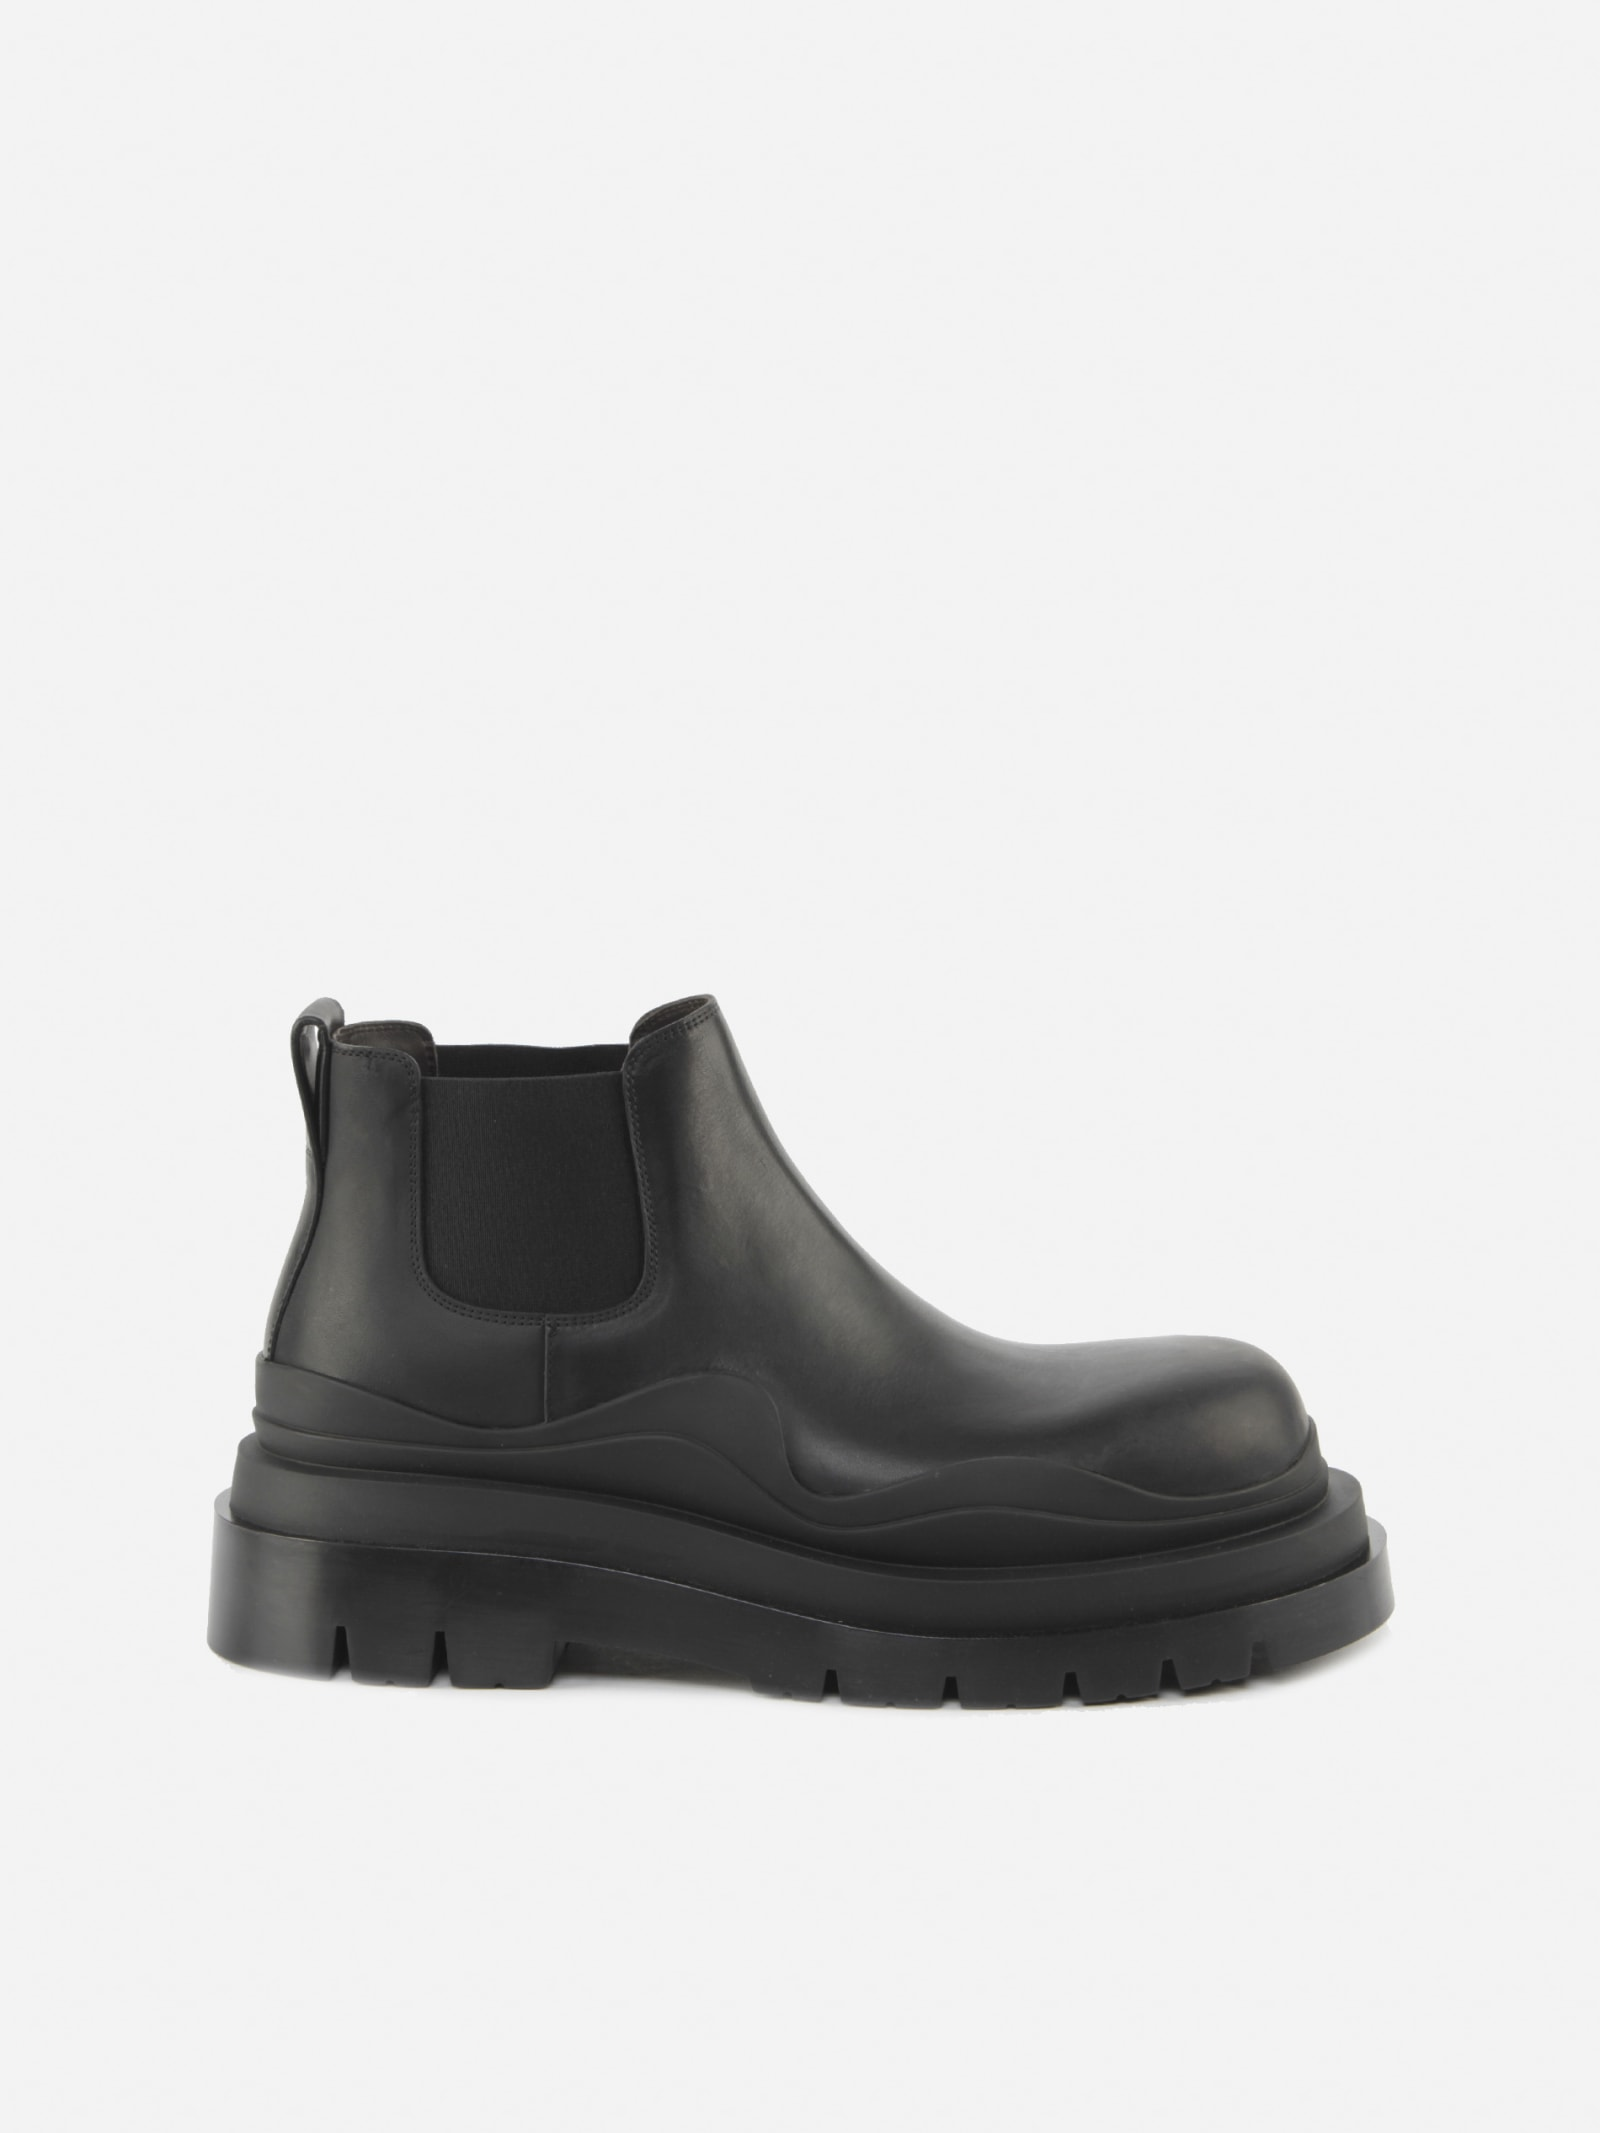 Bottega Veneta Bv Tire Ankle Boots Made Of Smooth Leather